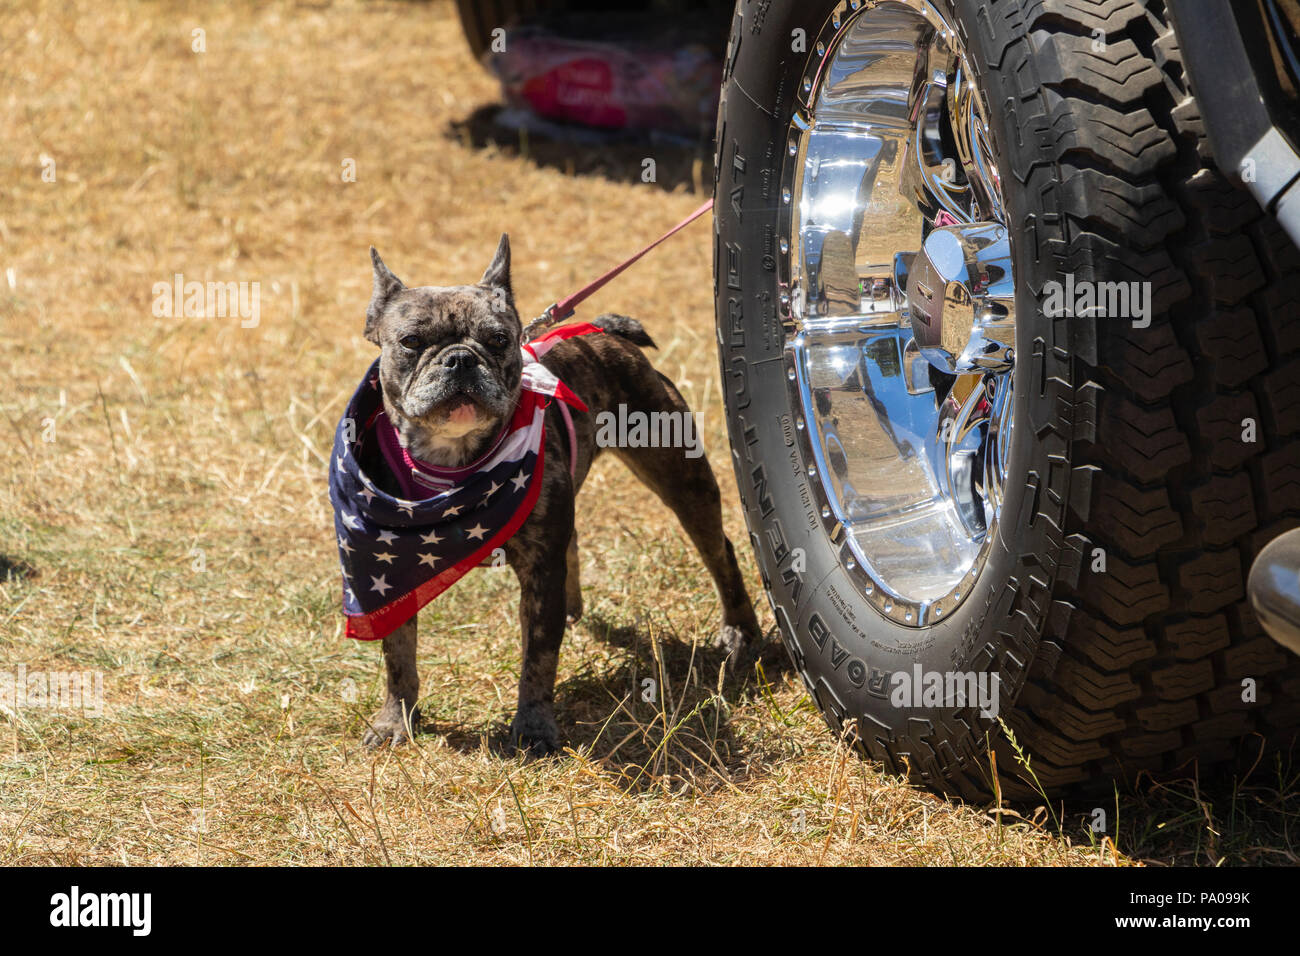 angry French bulldog with confederate neckerchief next to classic American car - Stock Image